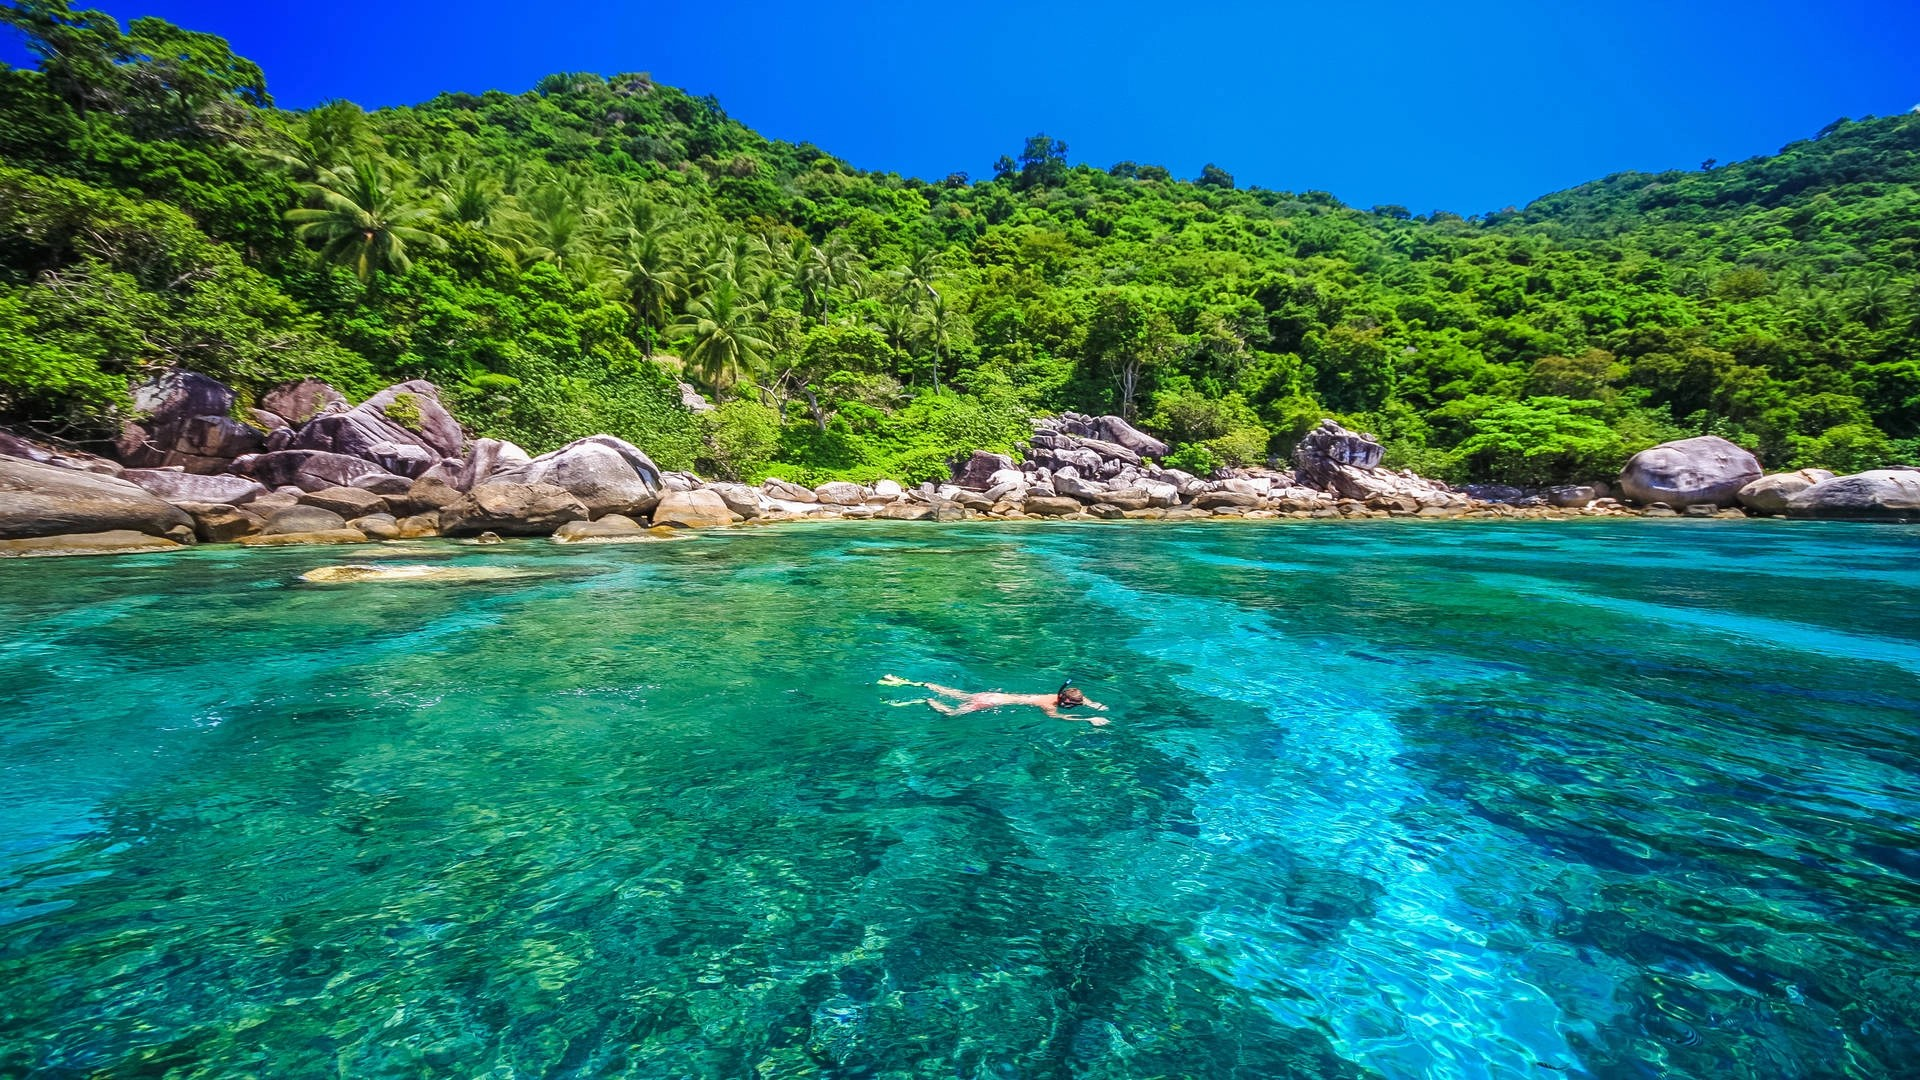 Diving in Koh Tao: A scuba guide to Turtle Island